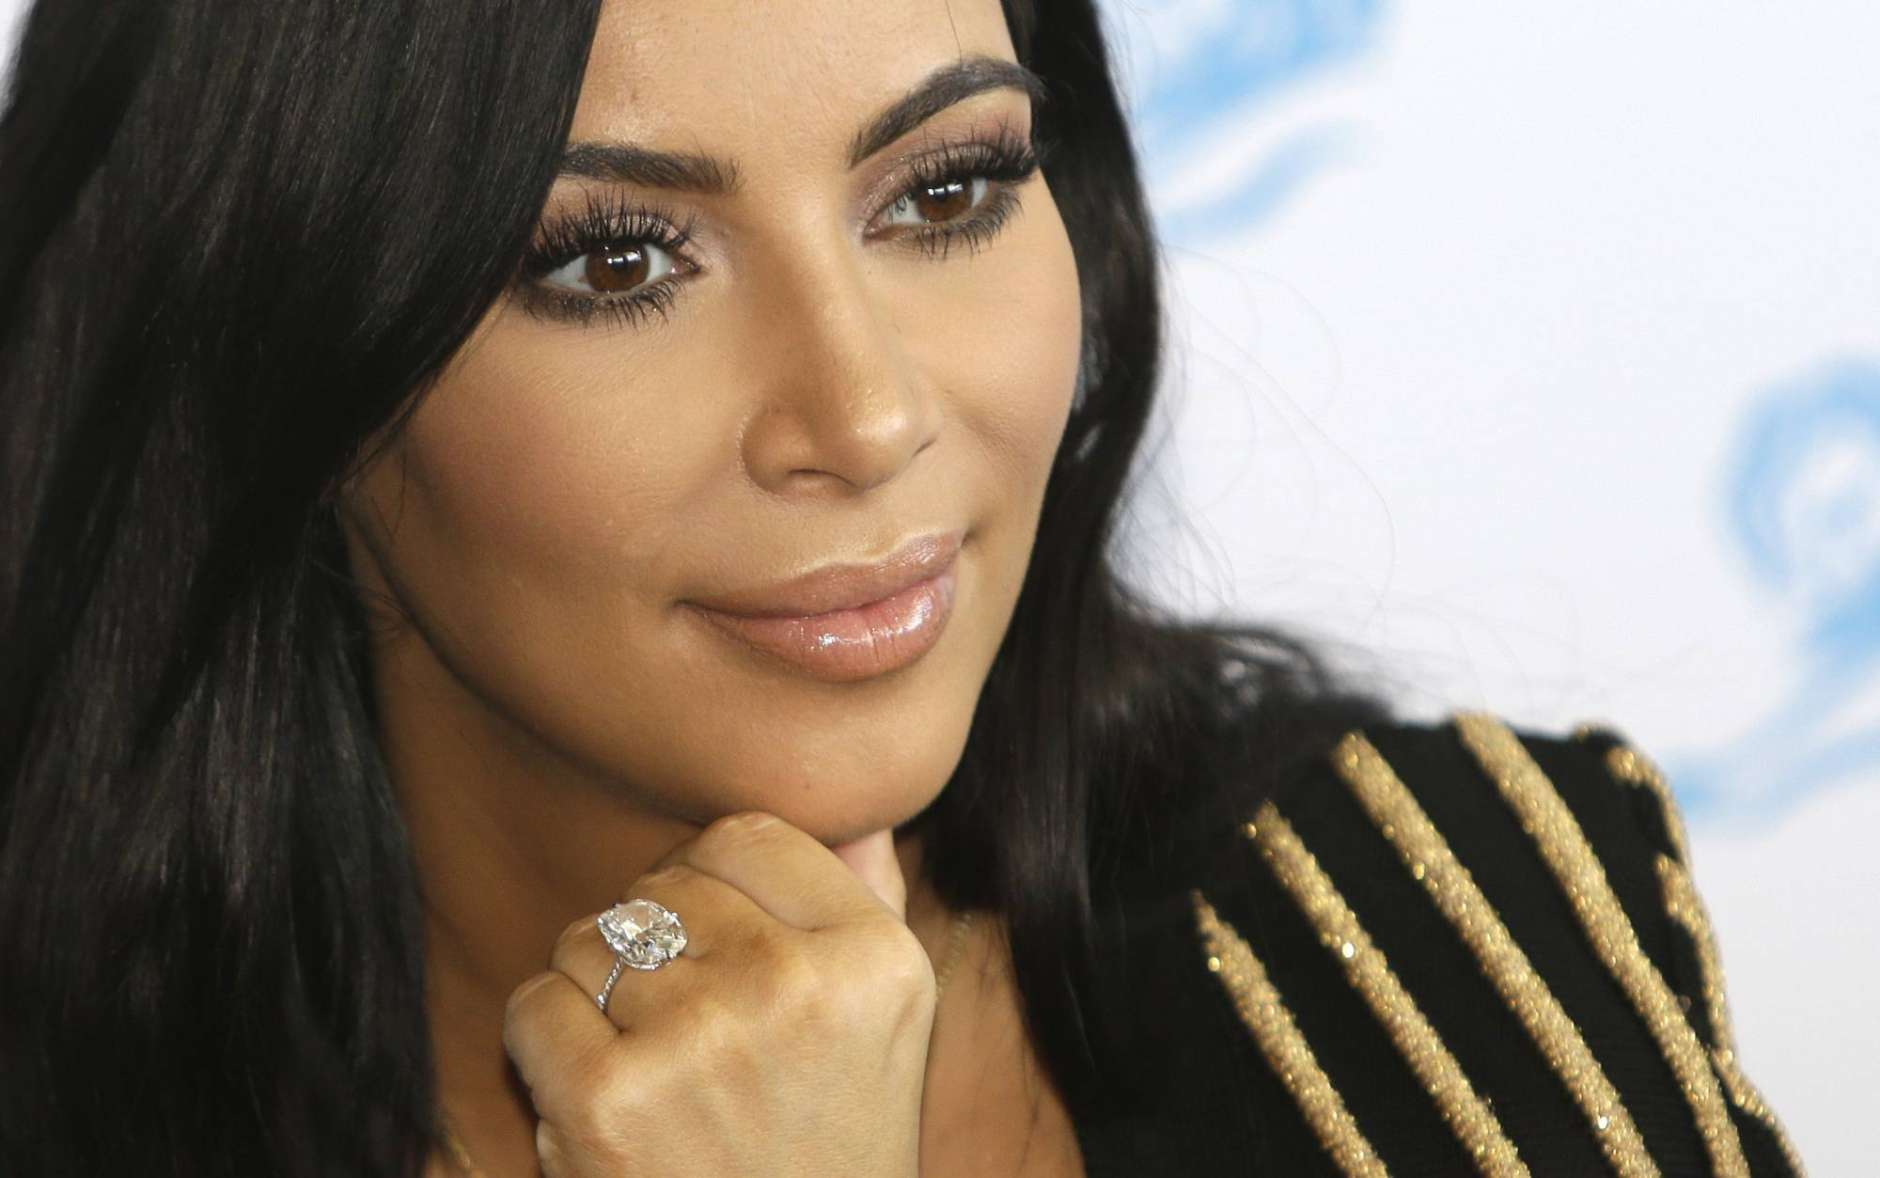 """FILE - In this June 24, 2015 file photo, American TV personality Kim Kardashian attends the Cannes Lions 2015, International Advertising Festival in Cannes, southern France. Kardashian discussed her experience being held at gunpoint during a Paris jewelry heist last year during an episode of E!'s """"Keeping Up with the Kardashians"""" that aired on Sunday, March 19, 2017. (AP Photo/Lionel Cironneau, File)"""